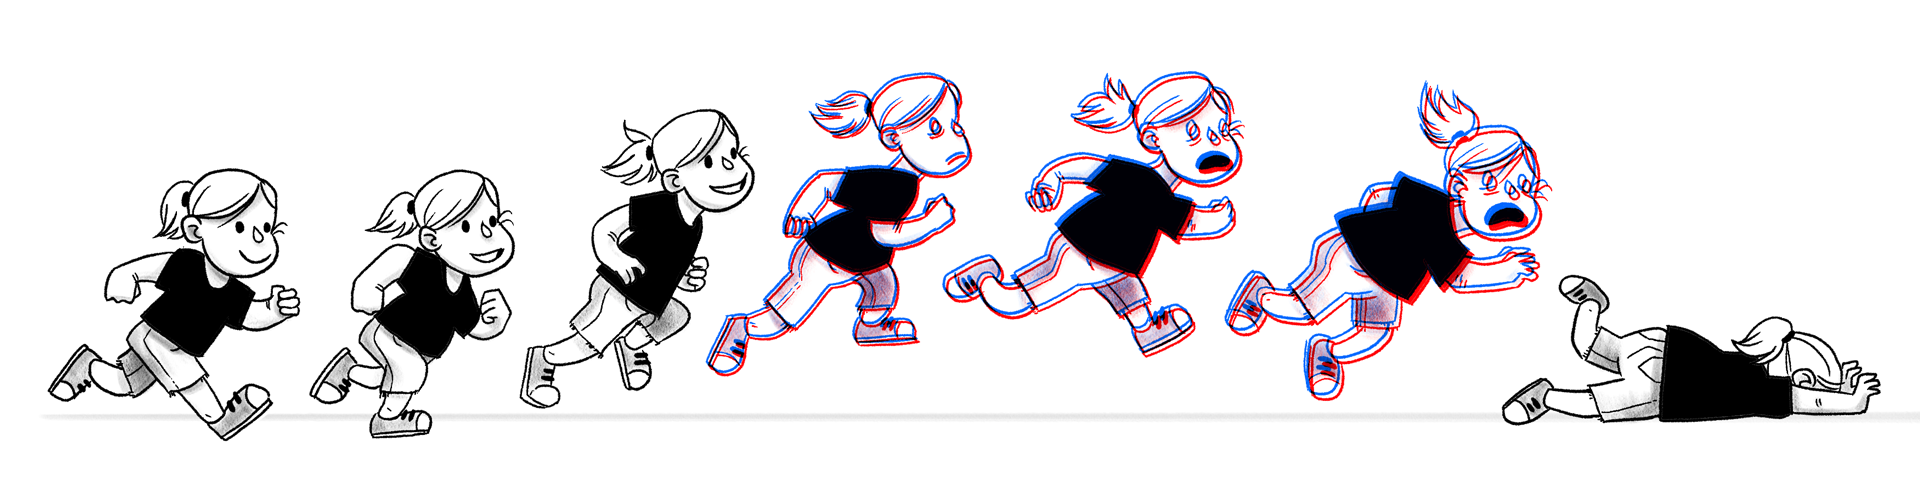 Illustration of a person running, jumping, and falling